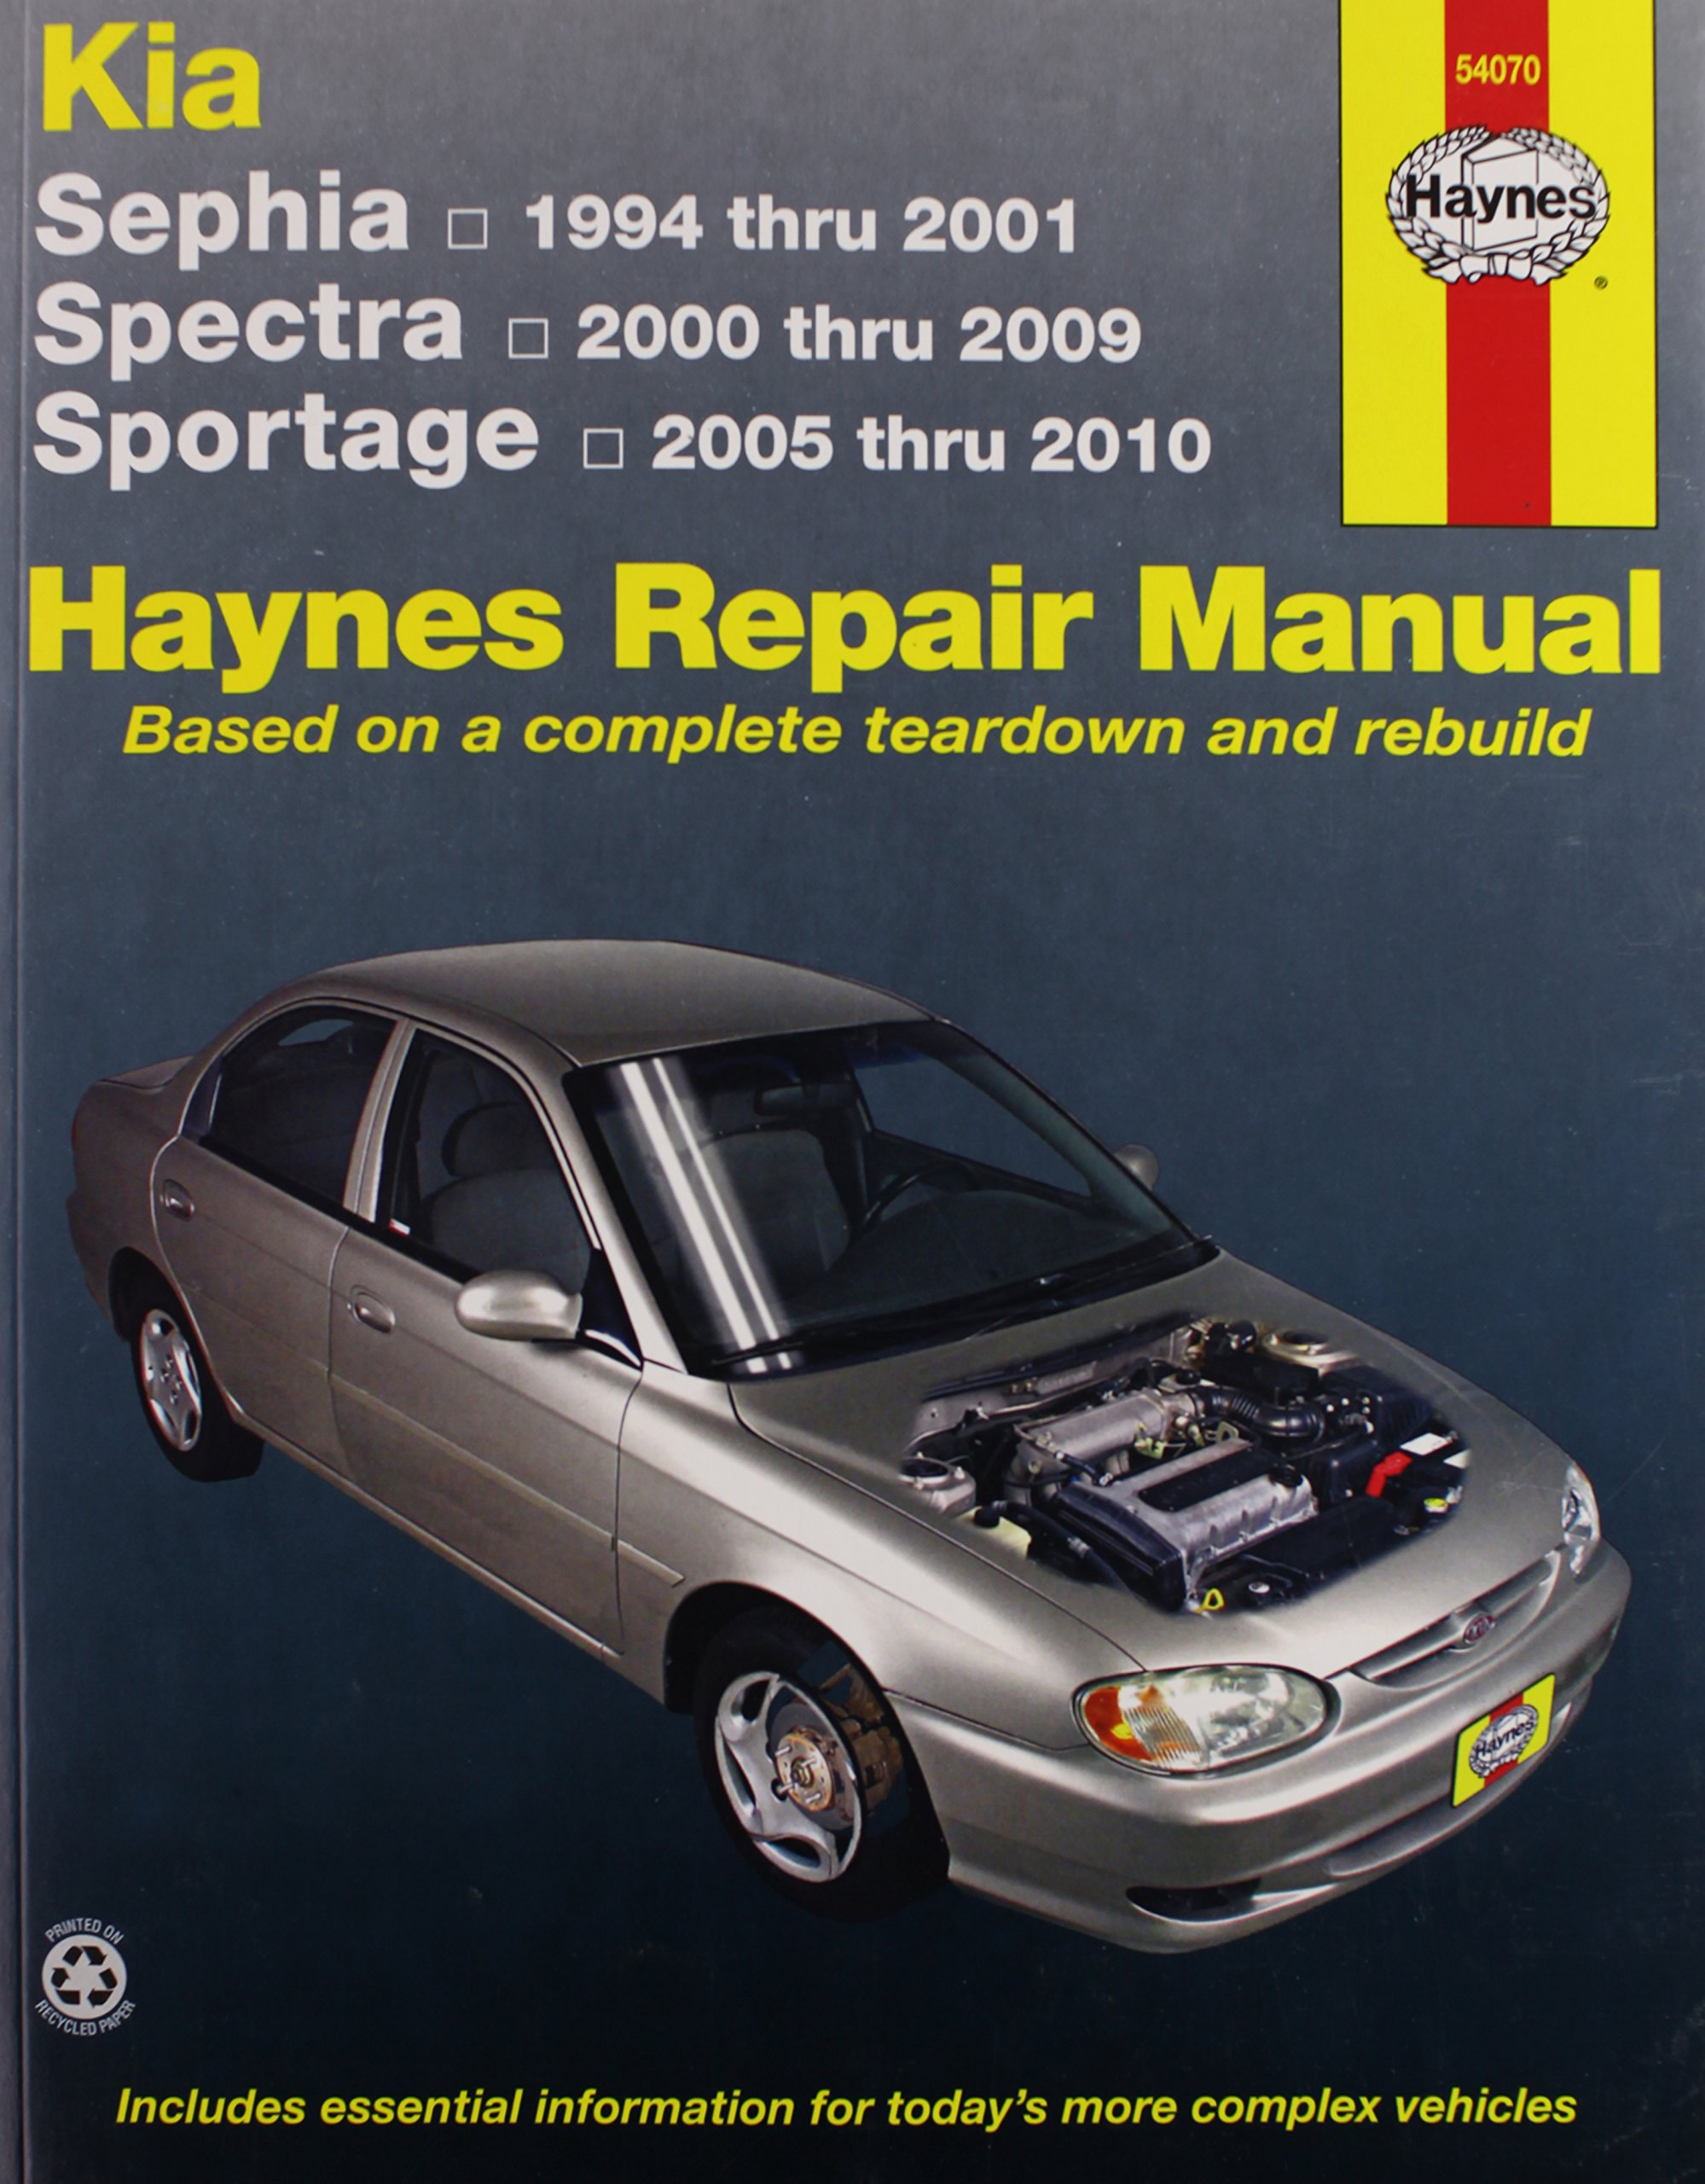 Haynes Publications, Inc. 54070 Repair Manual: John Haynes: 0038345540707:  Amazon.com: Books